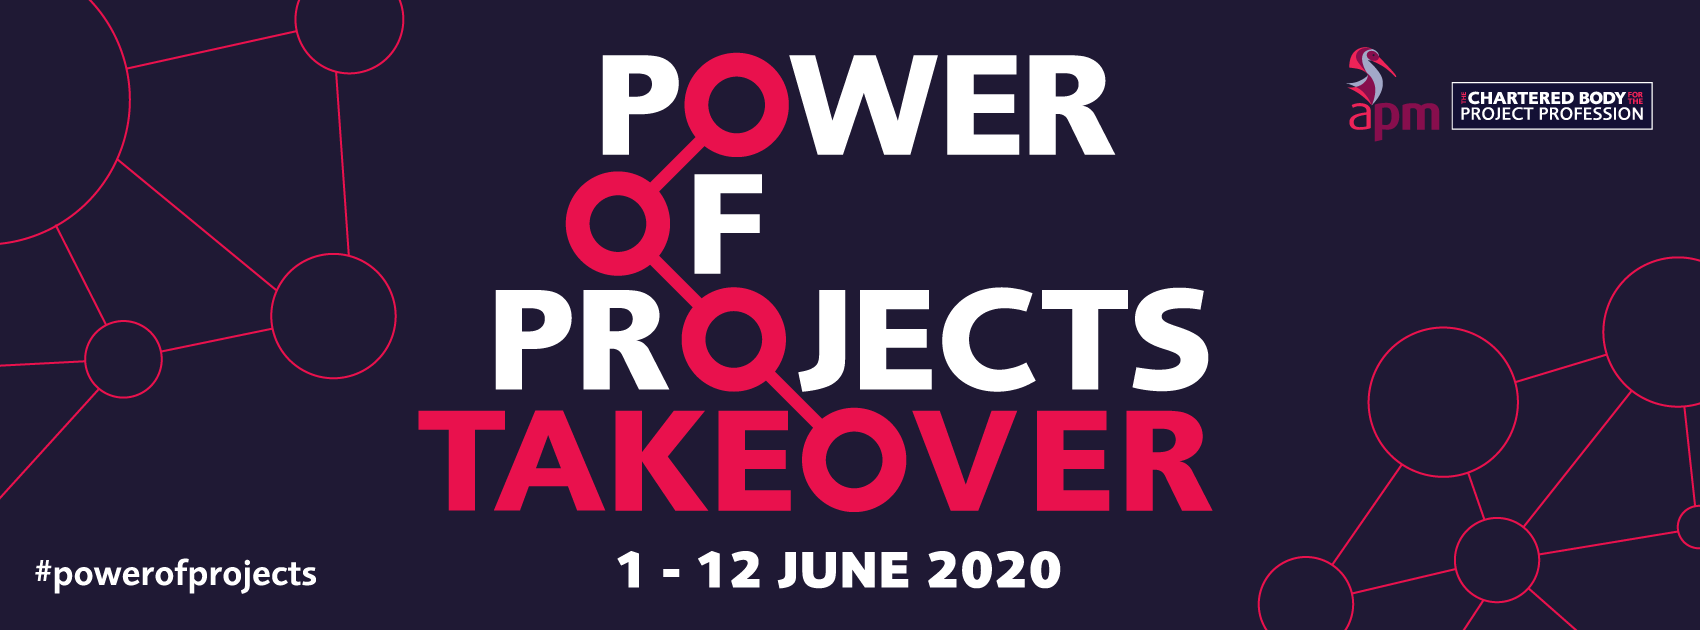 Power of Projects takeover